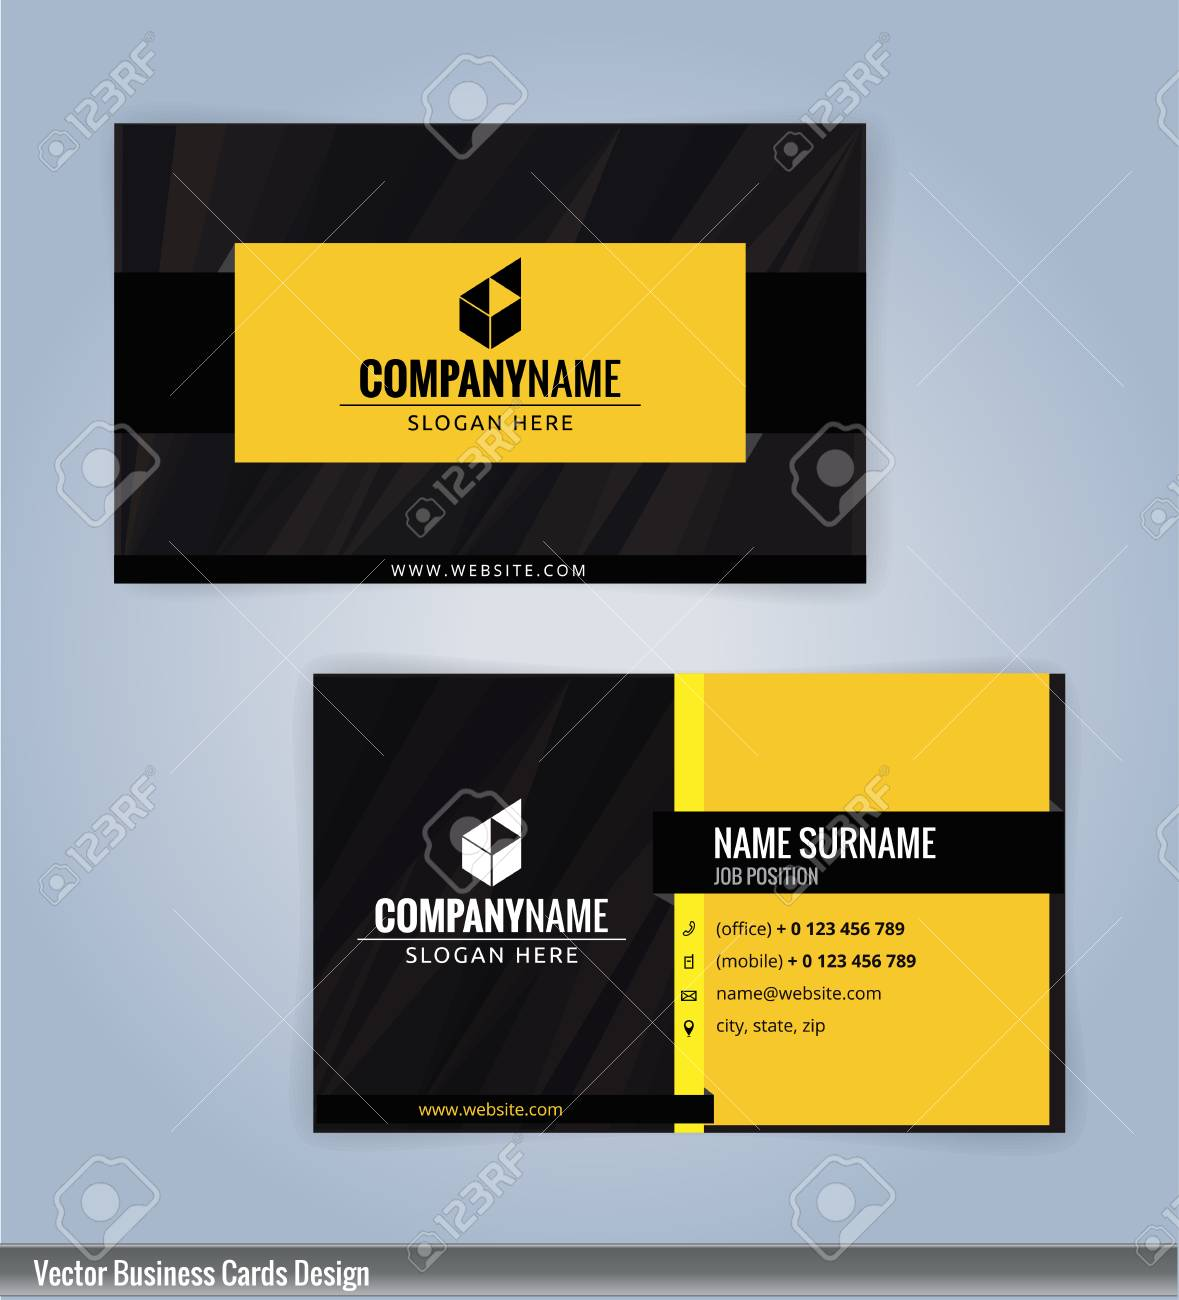 Yellow and Black modern business card template, Illustration..